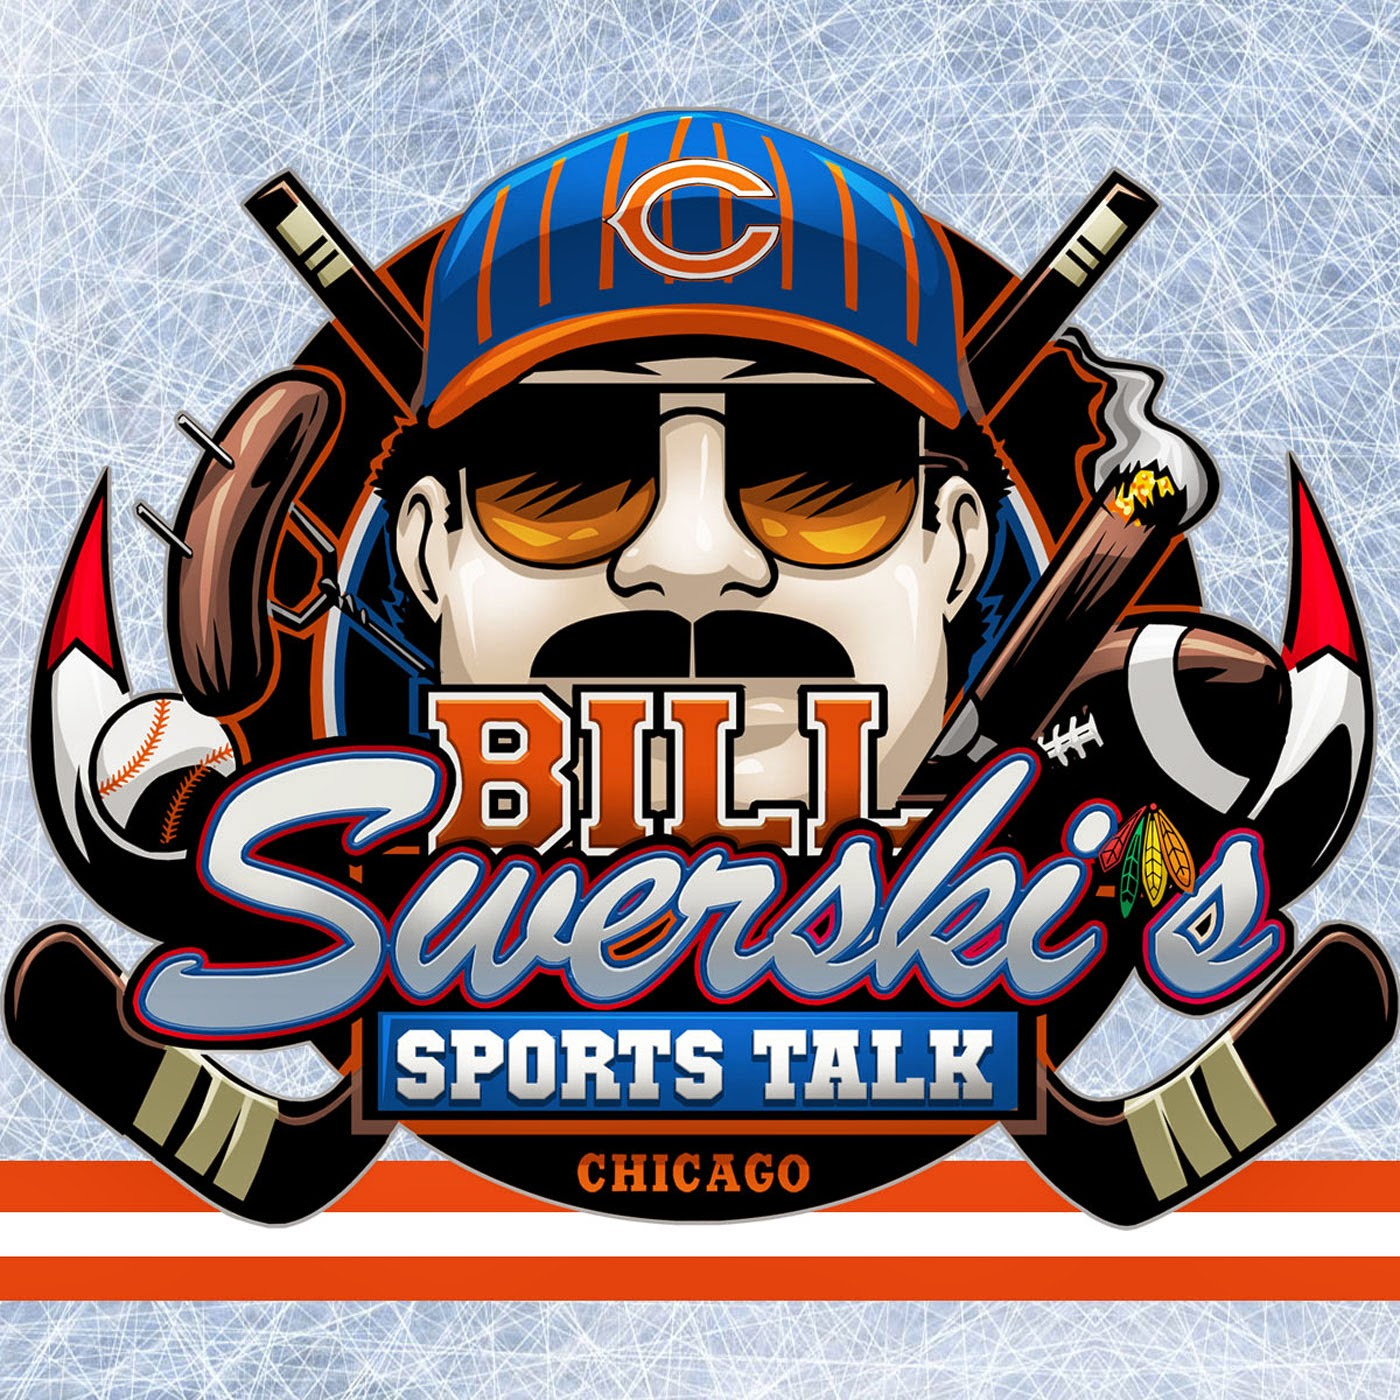 Bill Swerski's Sports Talk Chicago